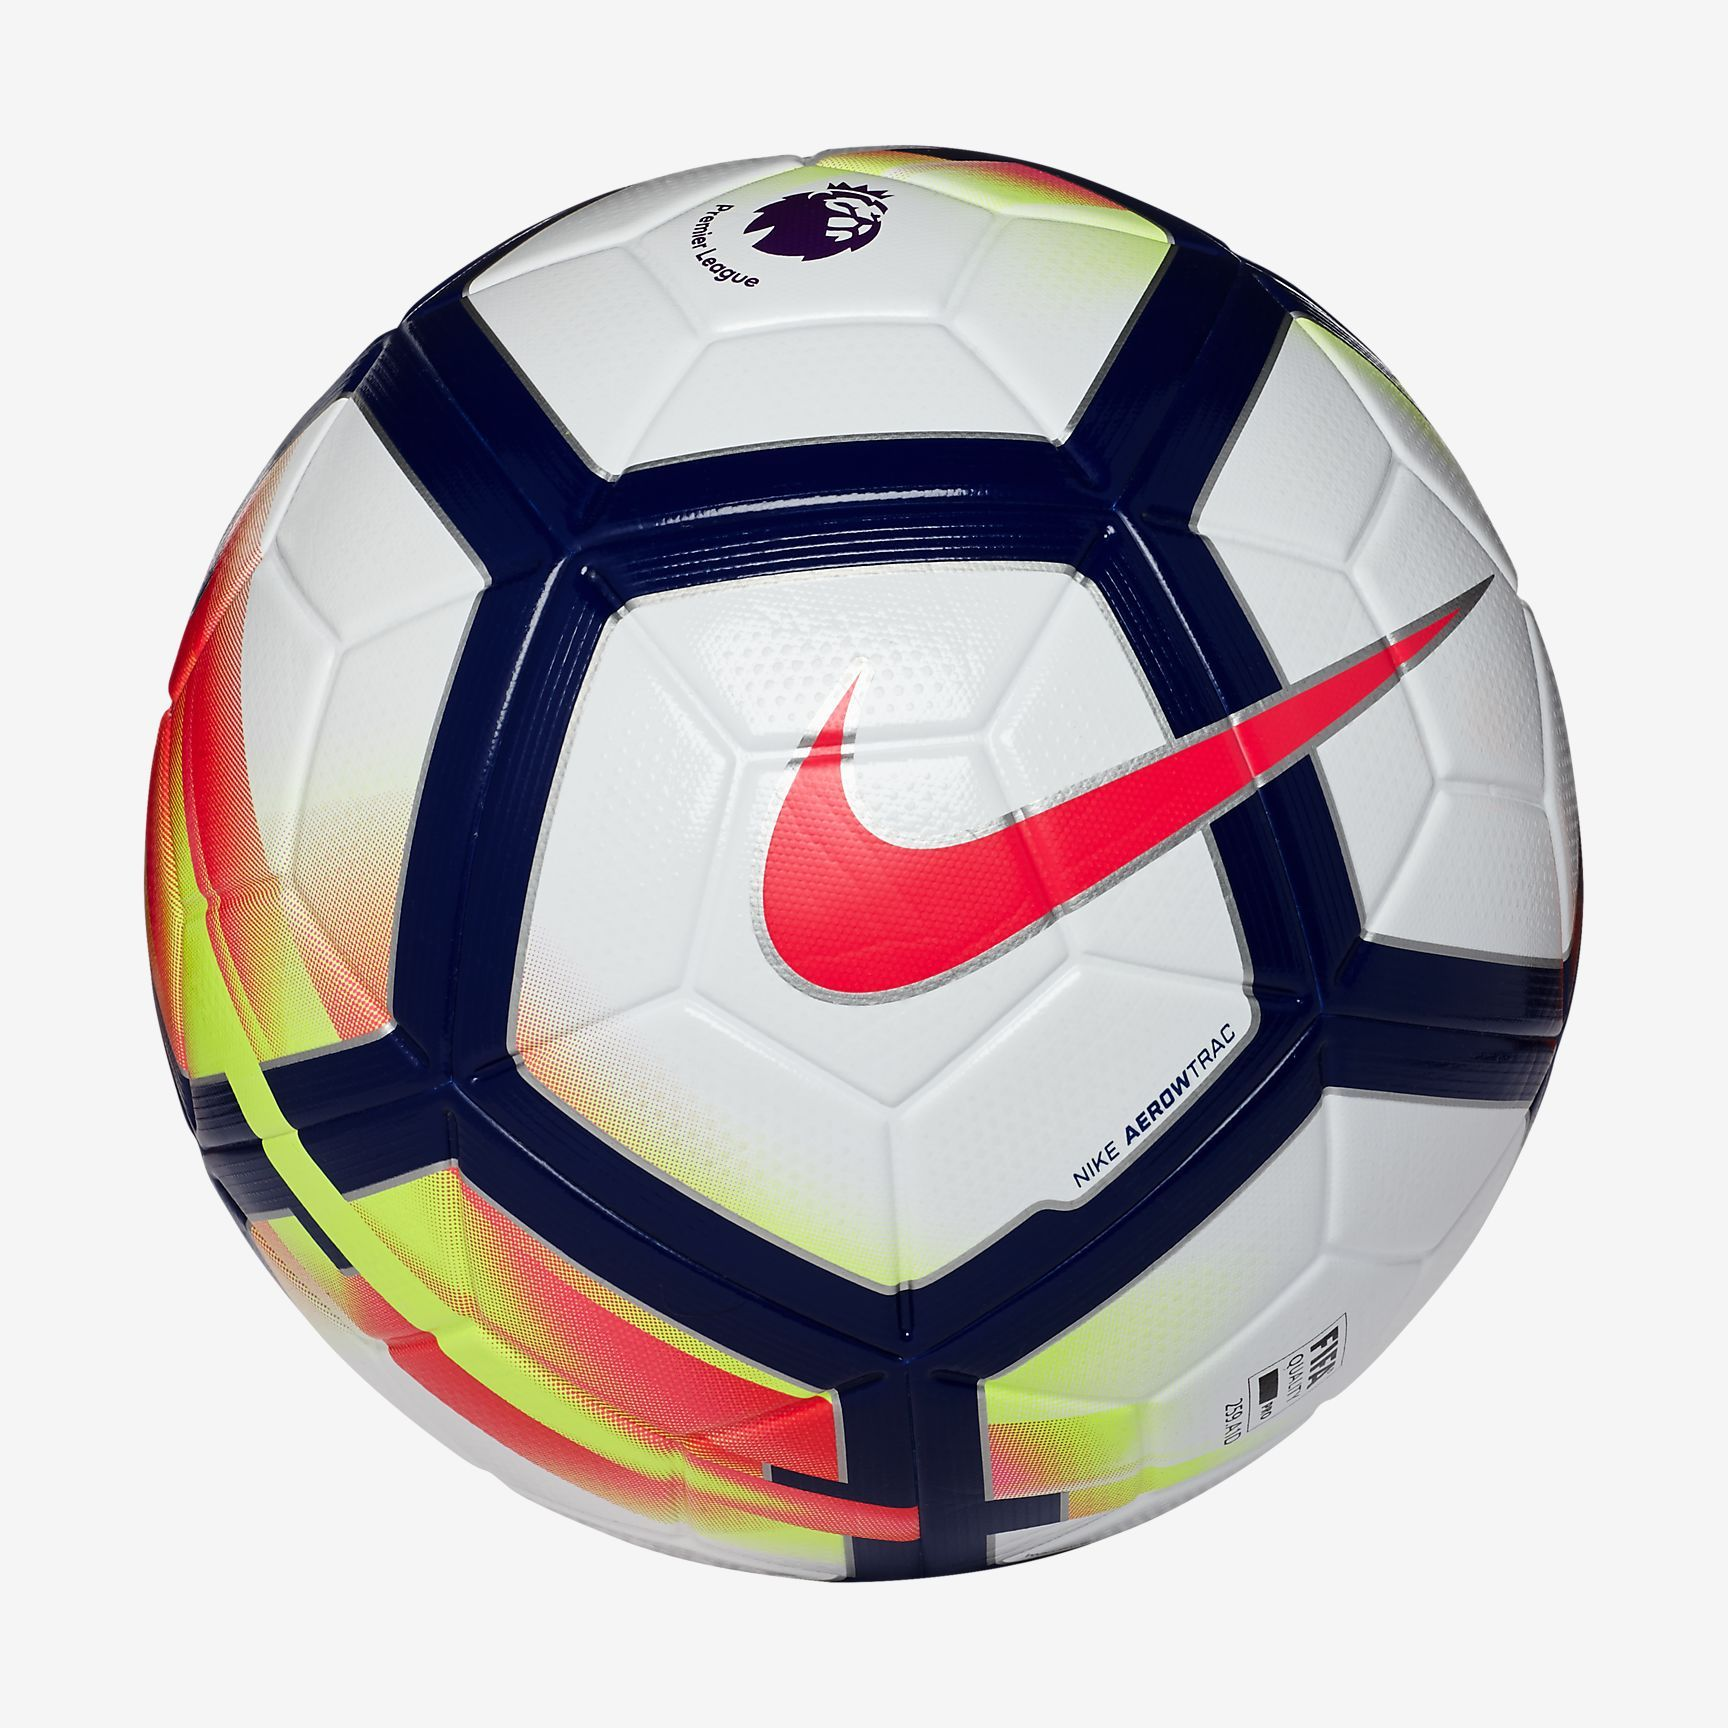 Nike Ordem V Premier League Soccer Ball  1839d0bed